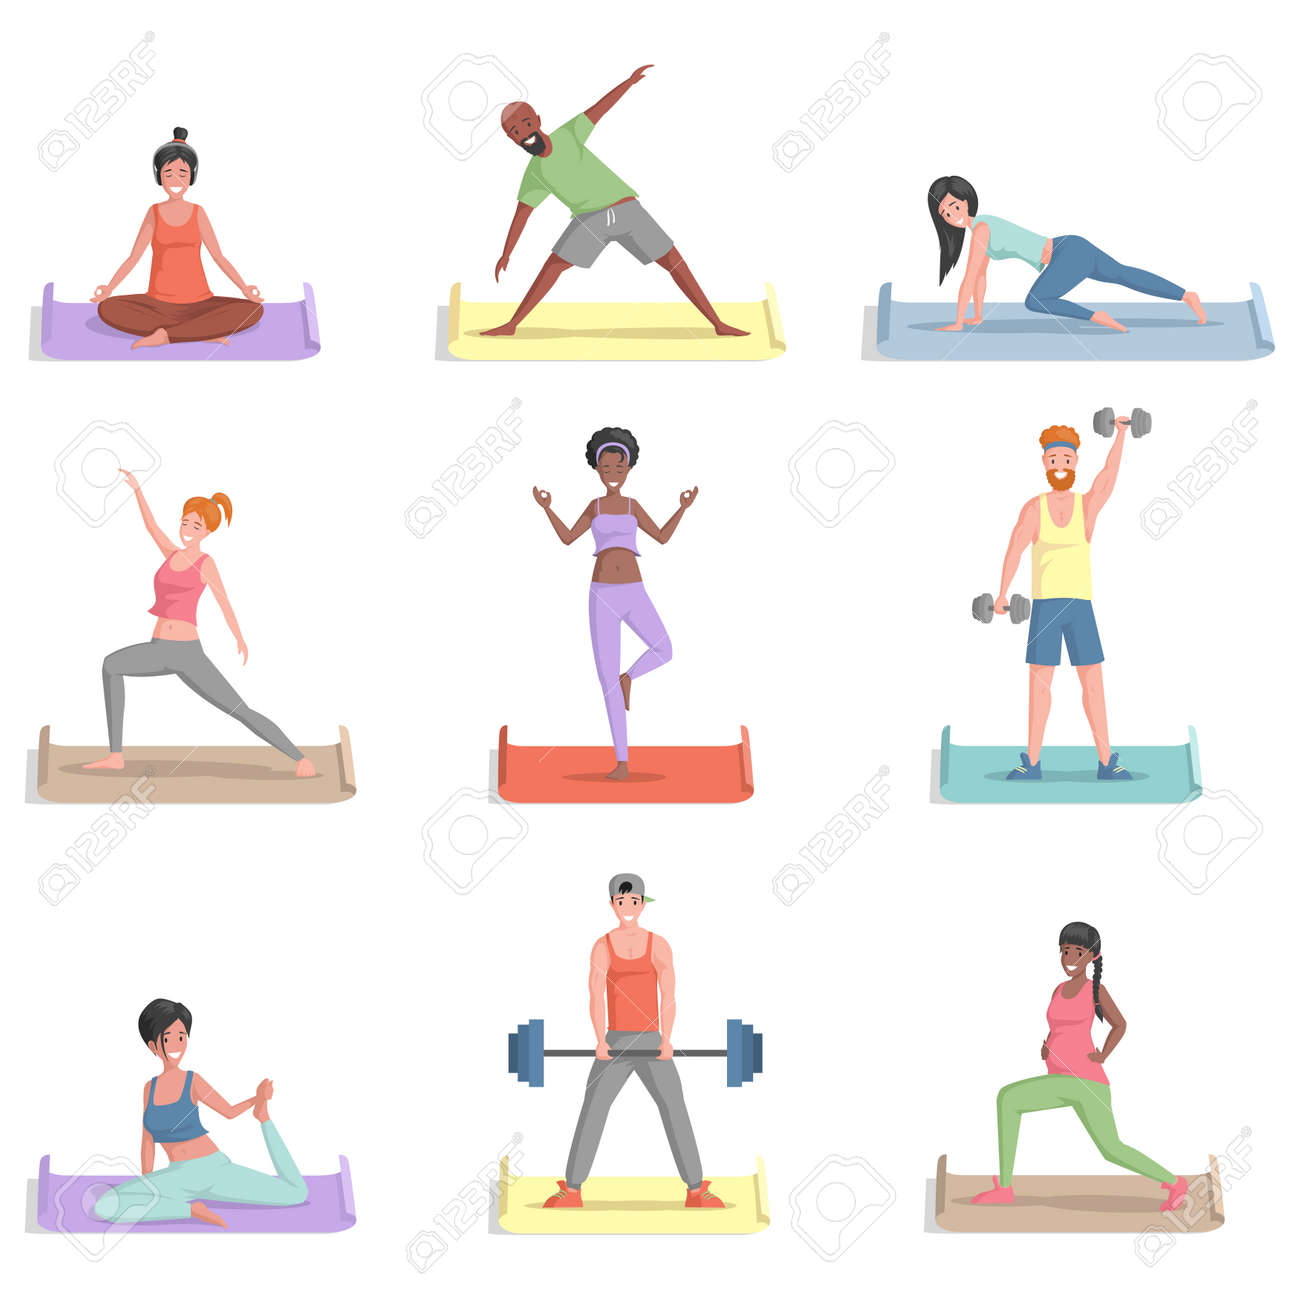 Set of people training vector flat illustration. Men and women in sports clothes doing exercises. - 172122204